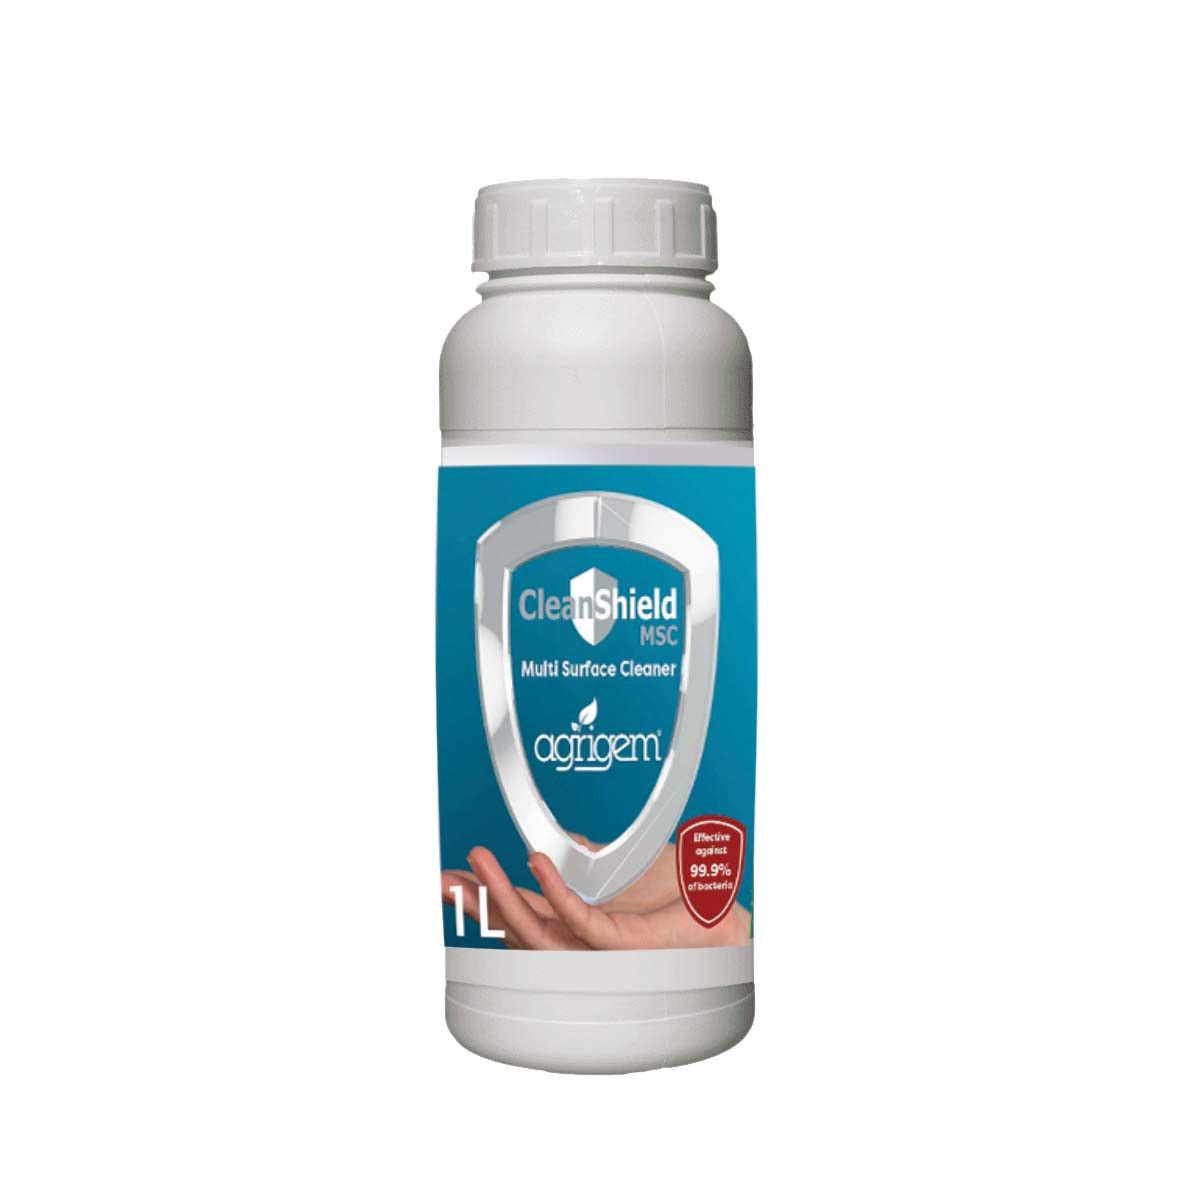 CleanShield 1L Multi Surface Cleaner & Residual Protection Against Viruses